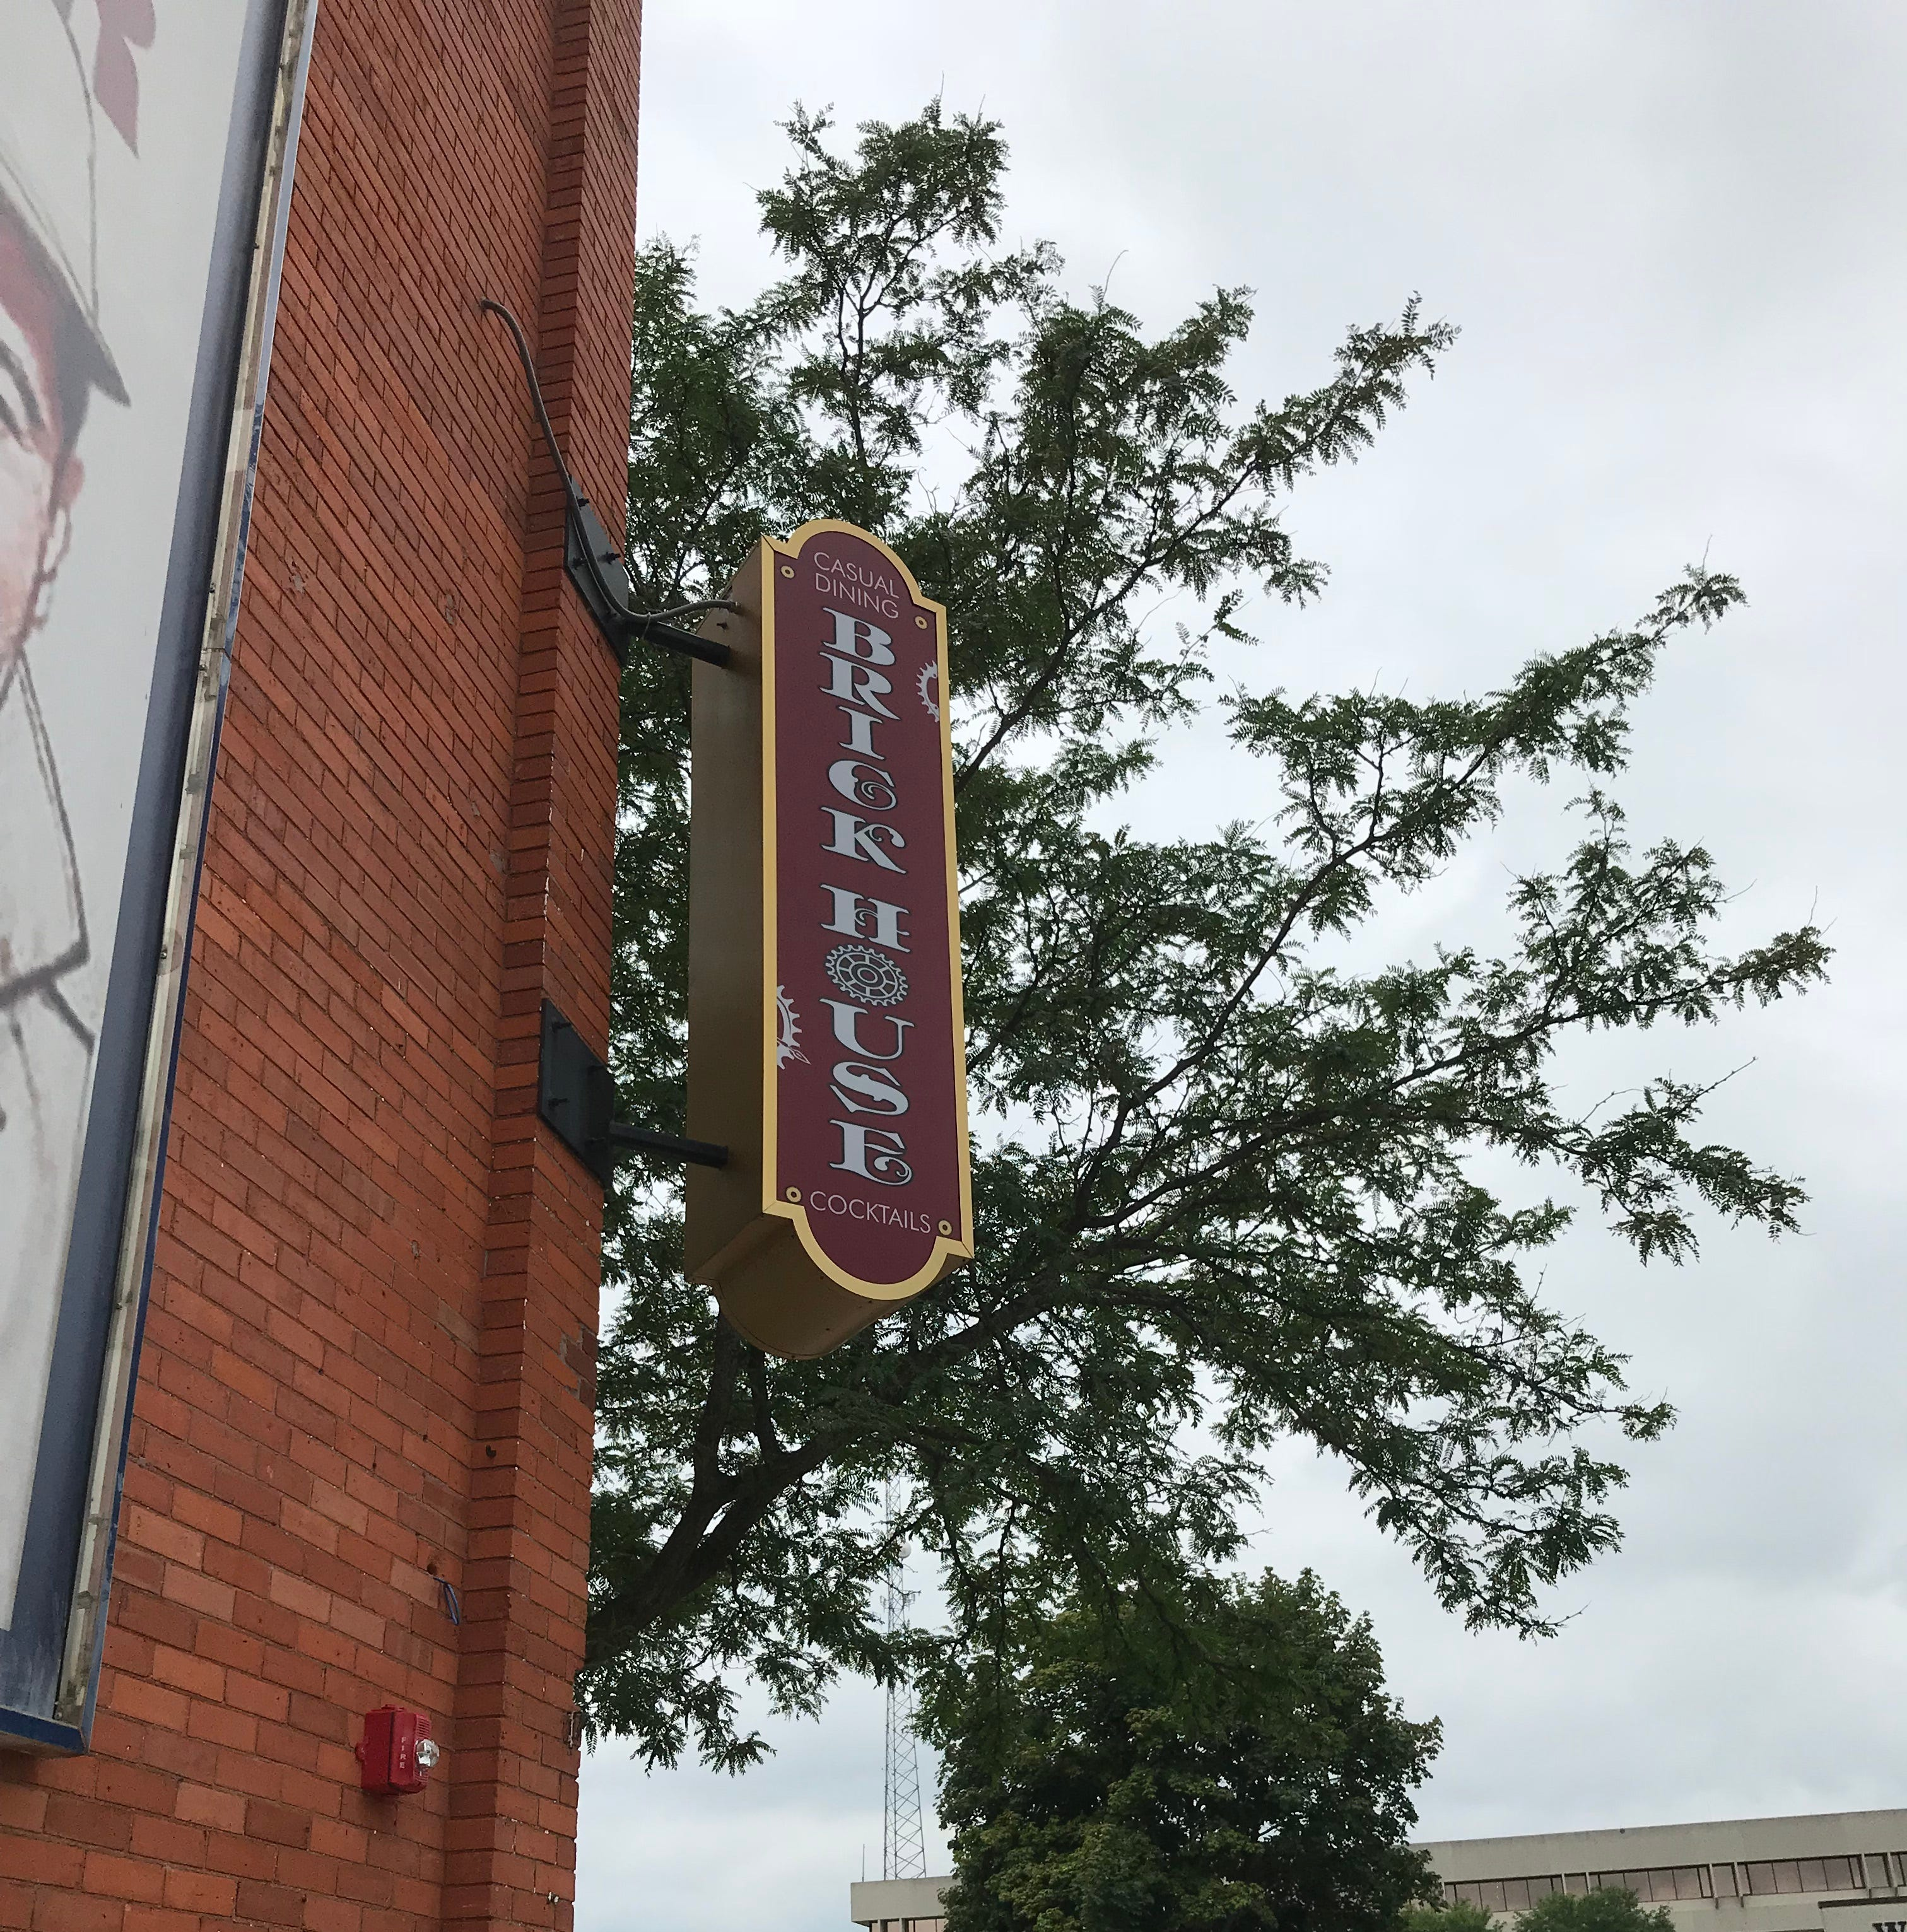 Brick House seeks to offer causal, classy restaurant as renovations continue| Streetwise